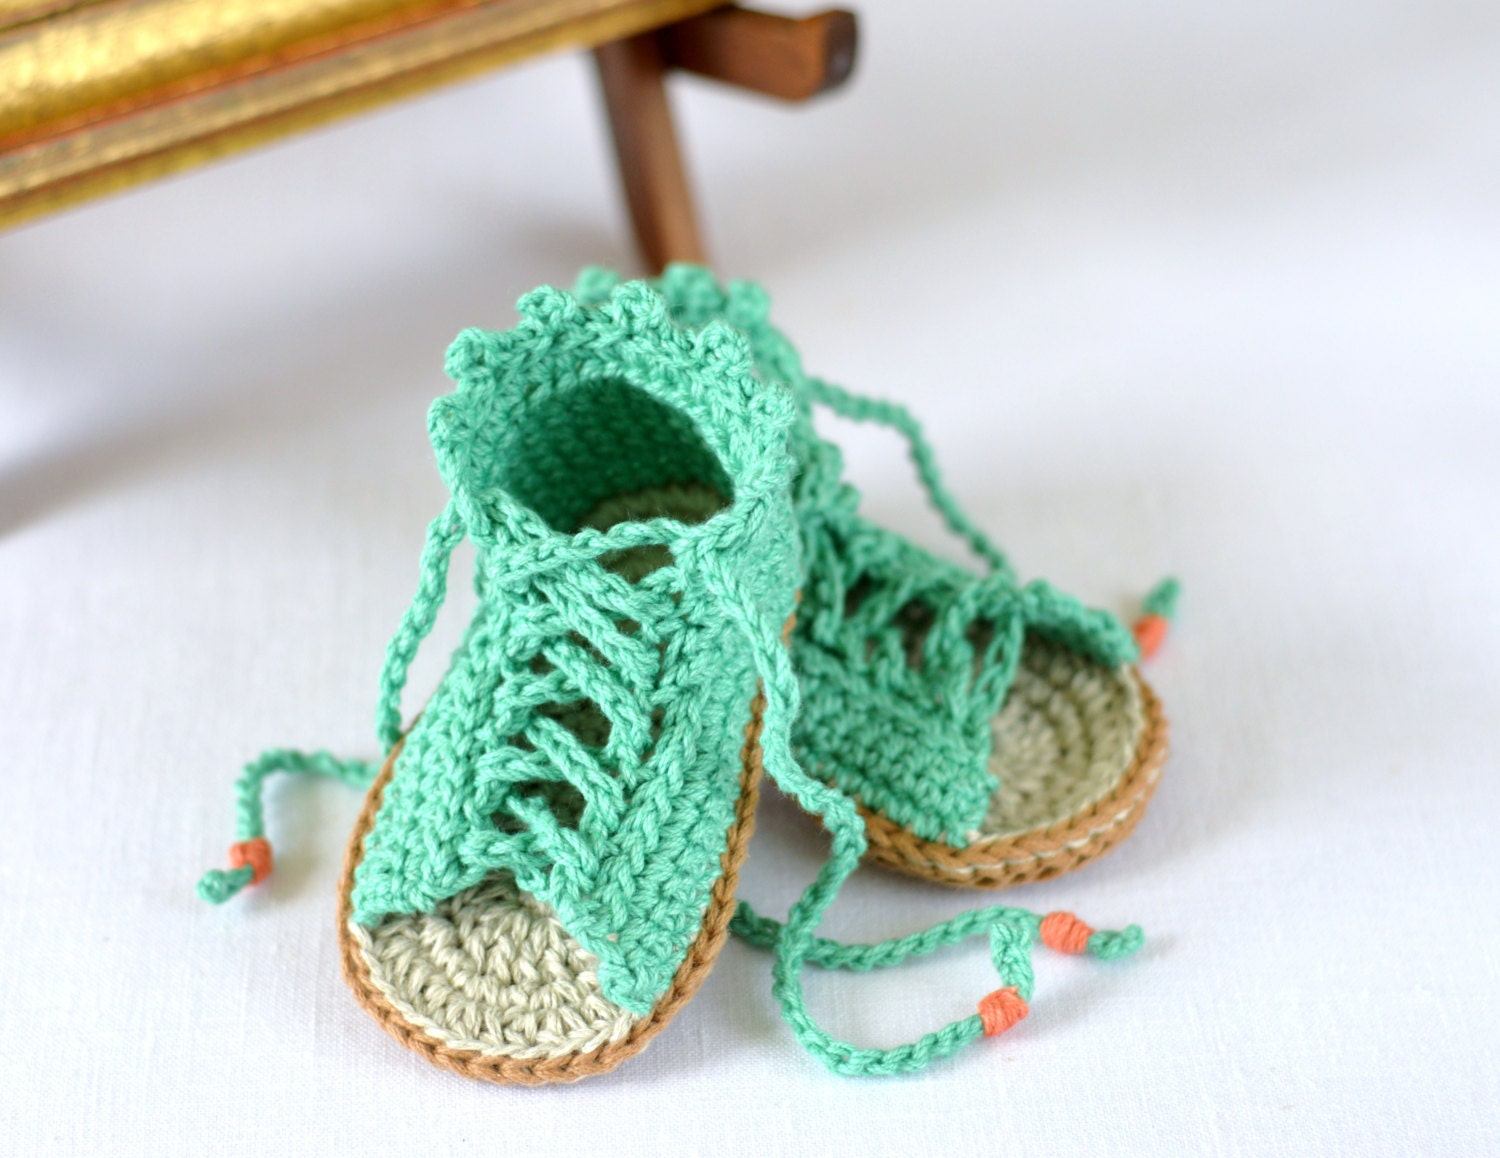 Simple Crochet Patterns For Baby Booties : CROCHET PATTERN Baby Sandals Baby Gladiator Sandals Crochet